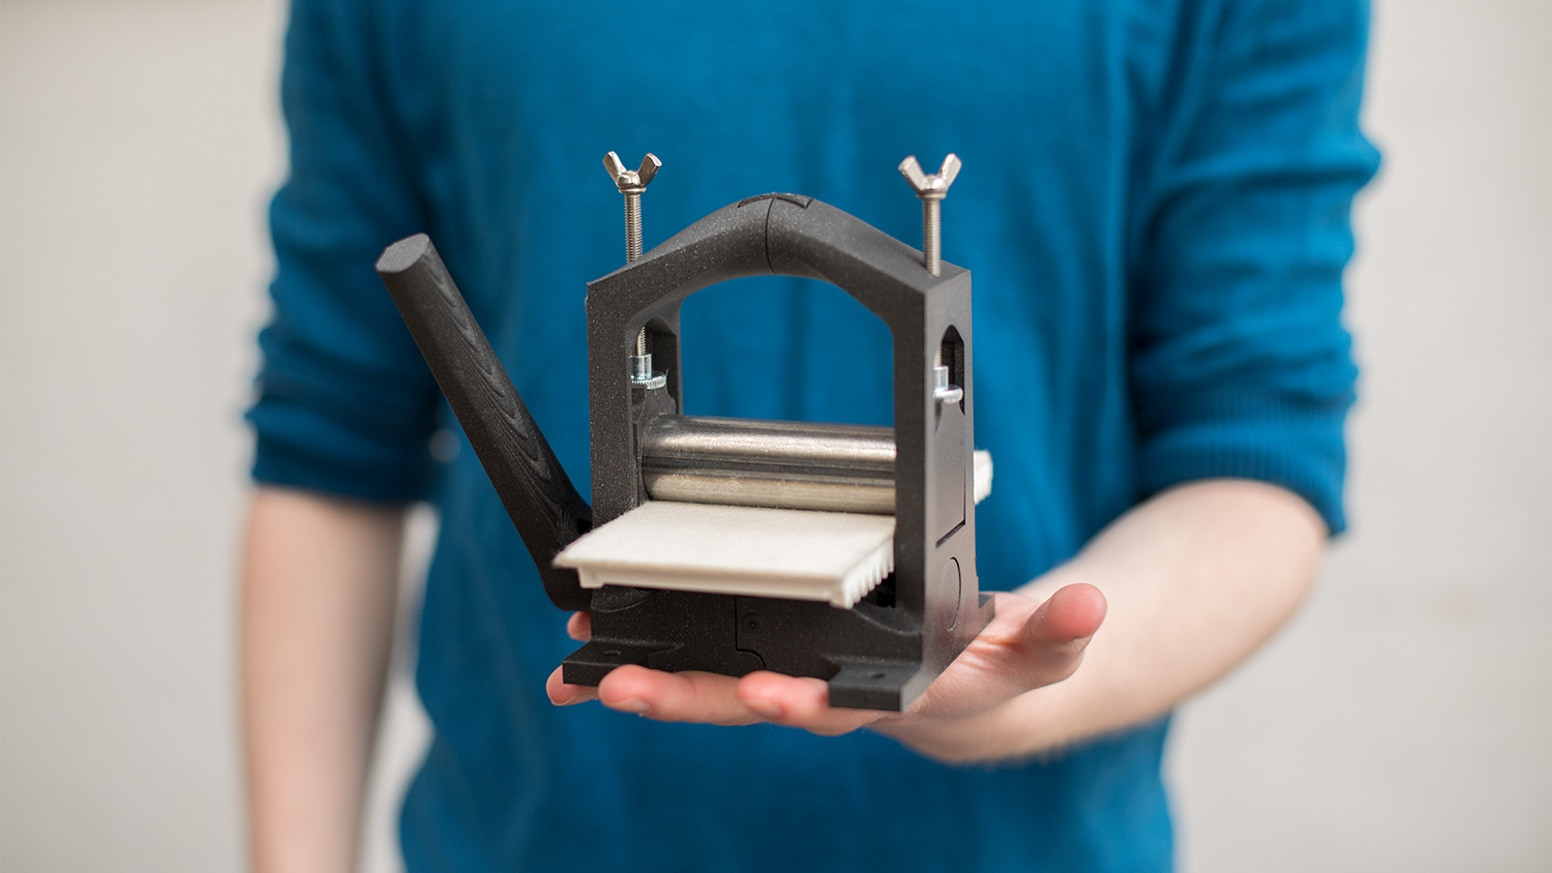 Open Press Project - The first 3D-Printed Printmaking Press